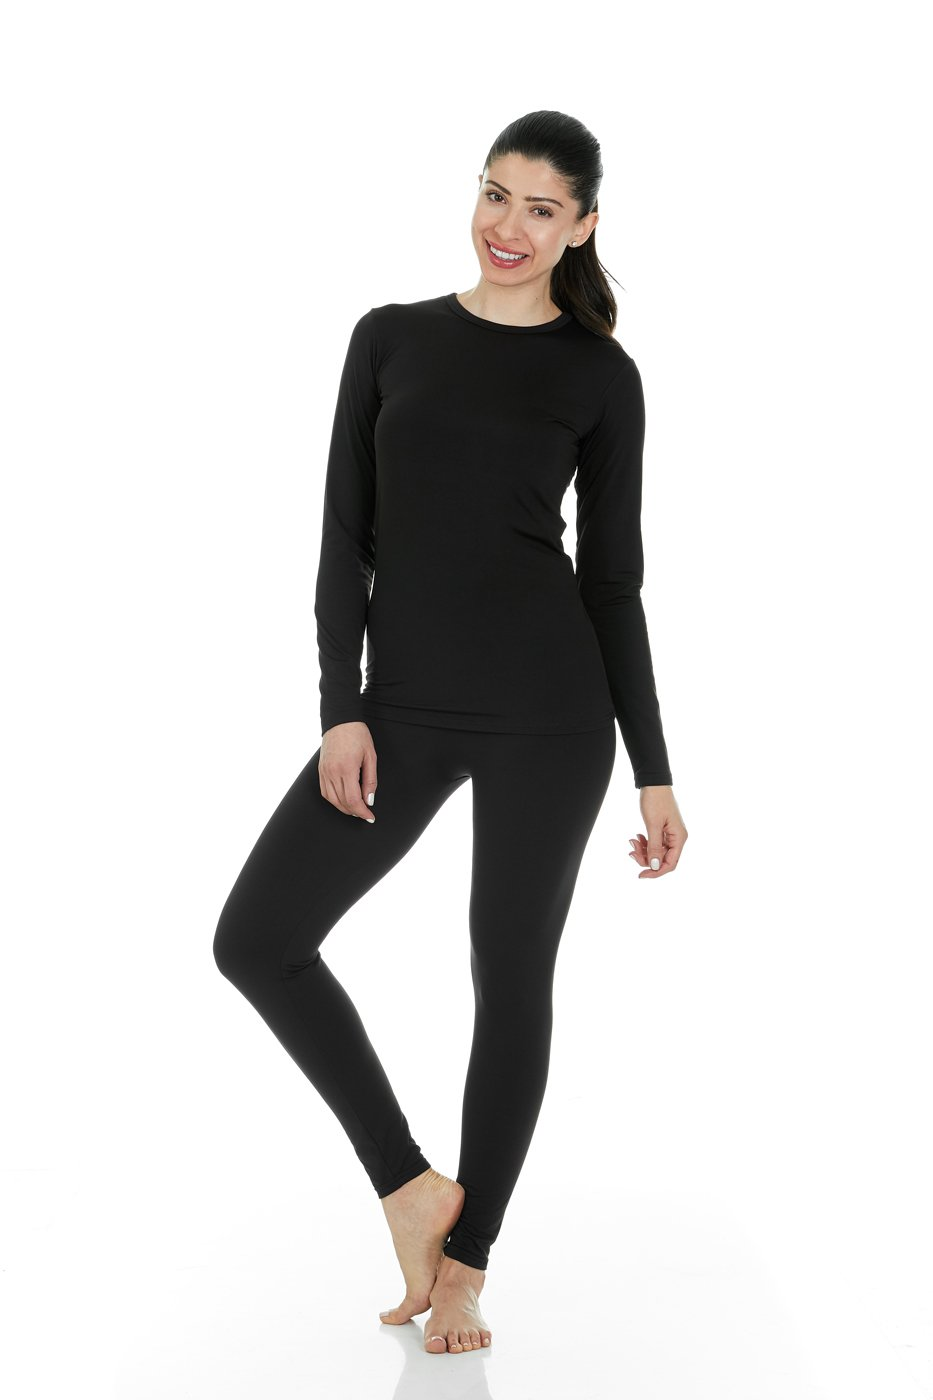 Thermajane Women's Ultra Soft Thermal Underwear Long Johns Set with Fleece Lined (X-Small, Black)